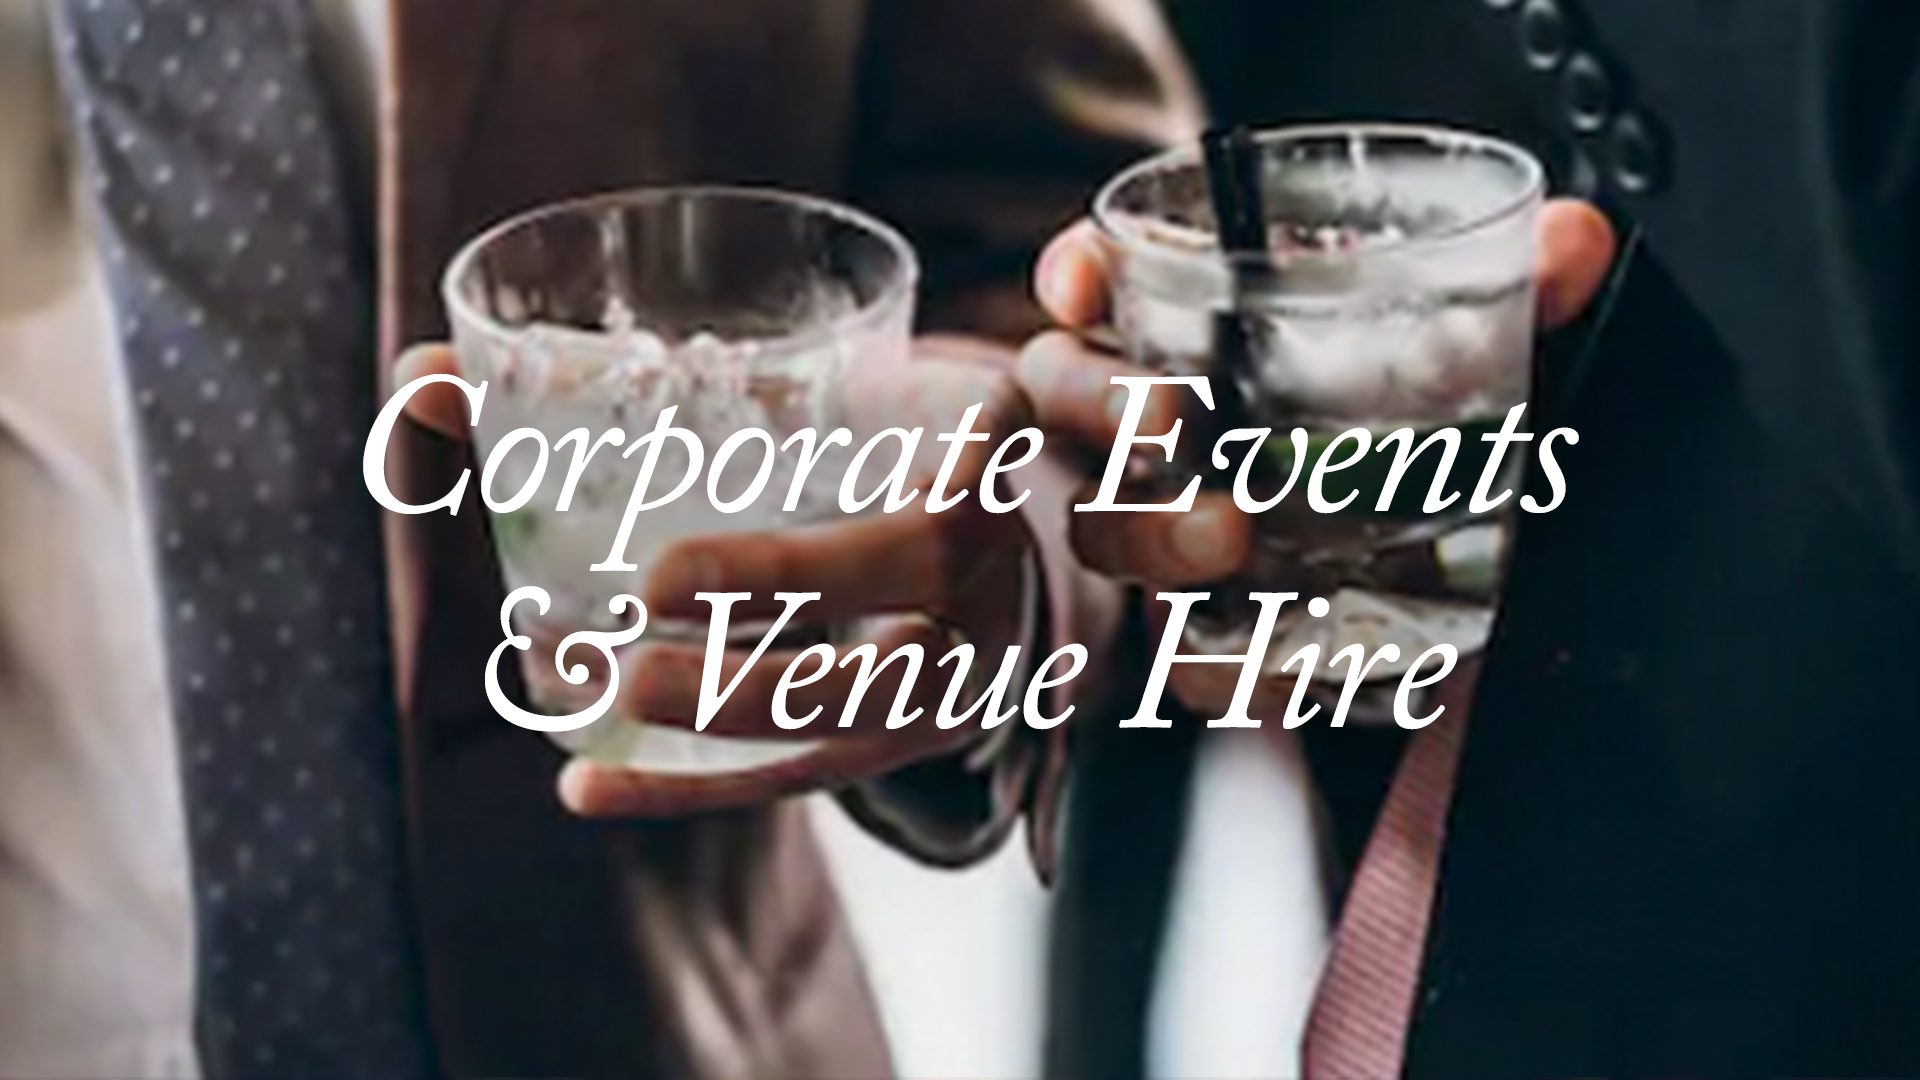 Corporate-Events-&-Venue-Hire.jpg